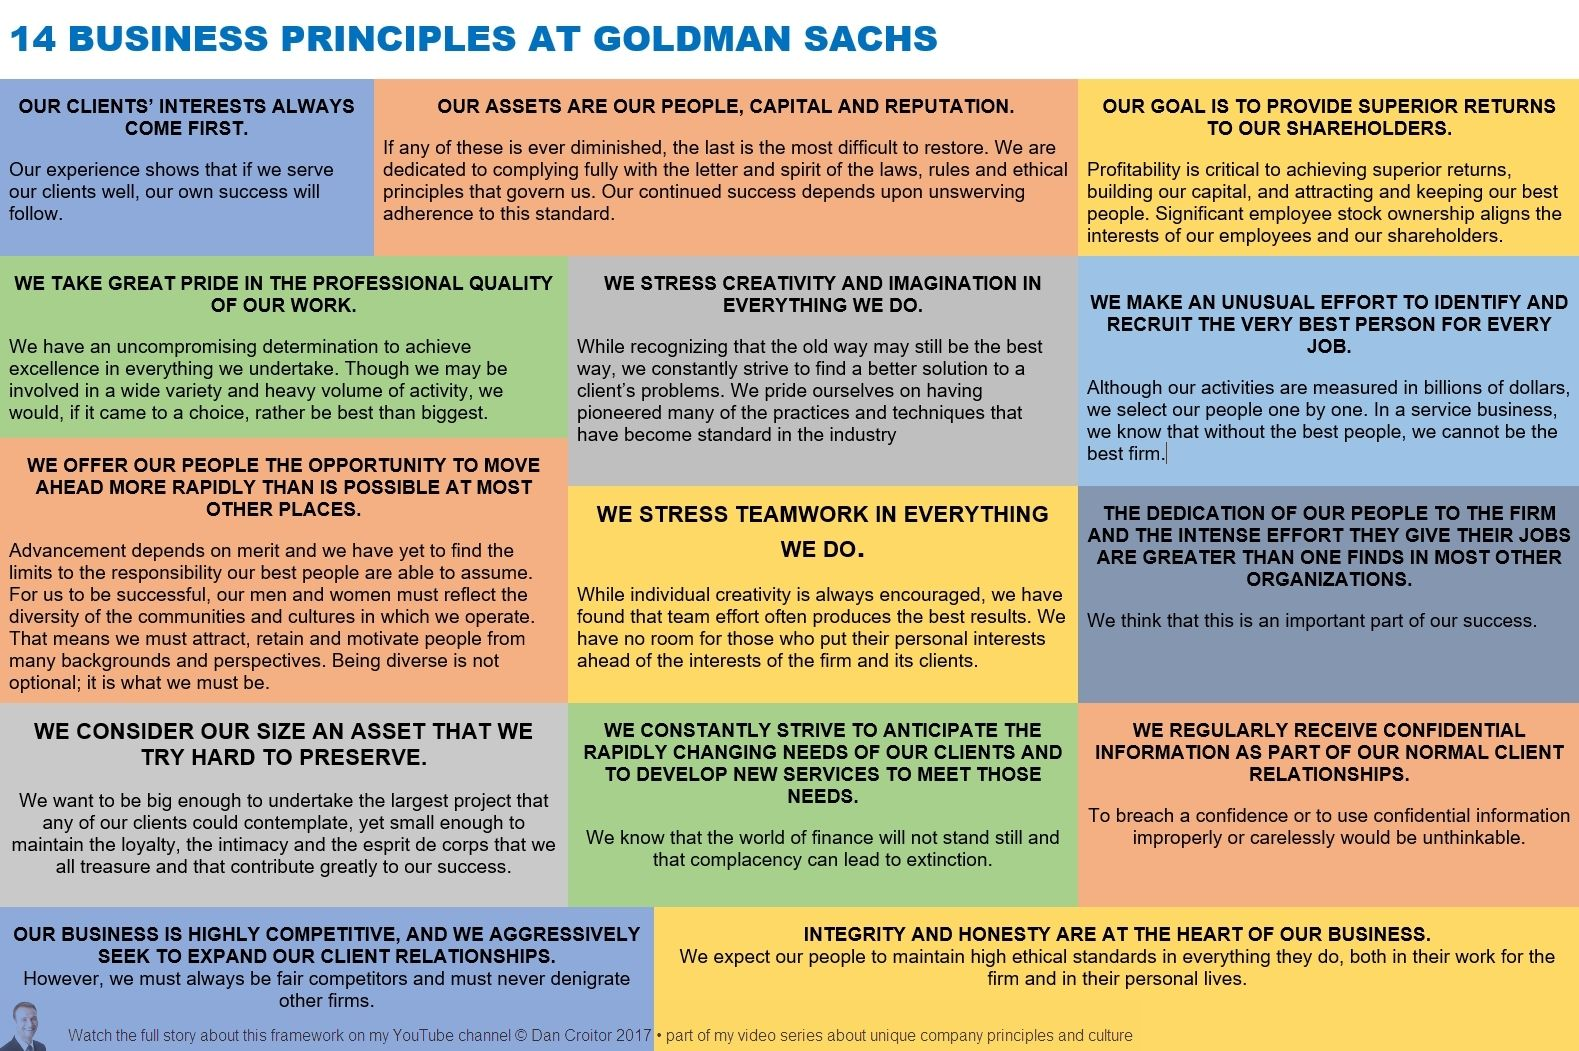 14 Business Principles At Goldman Sachs Core Values Principles Leadership